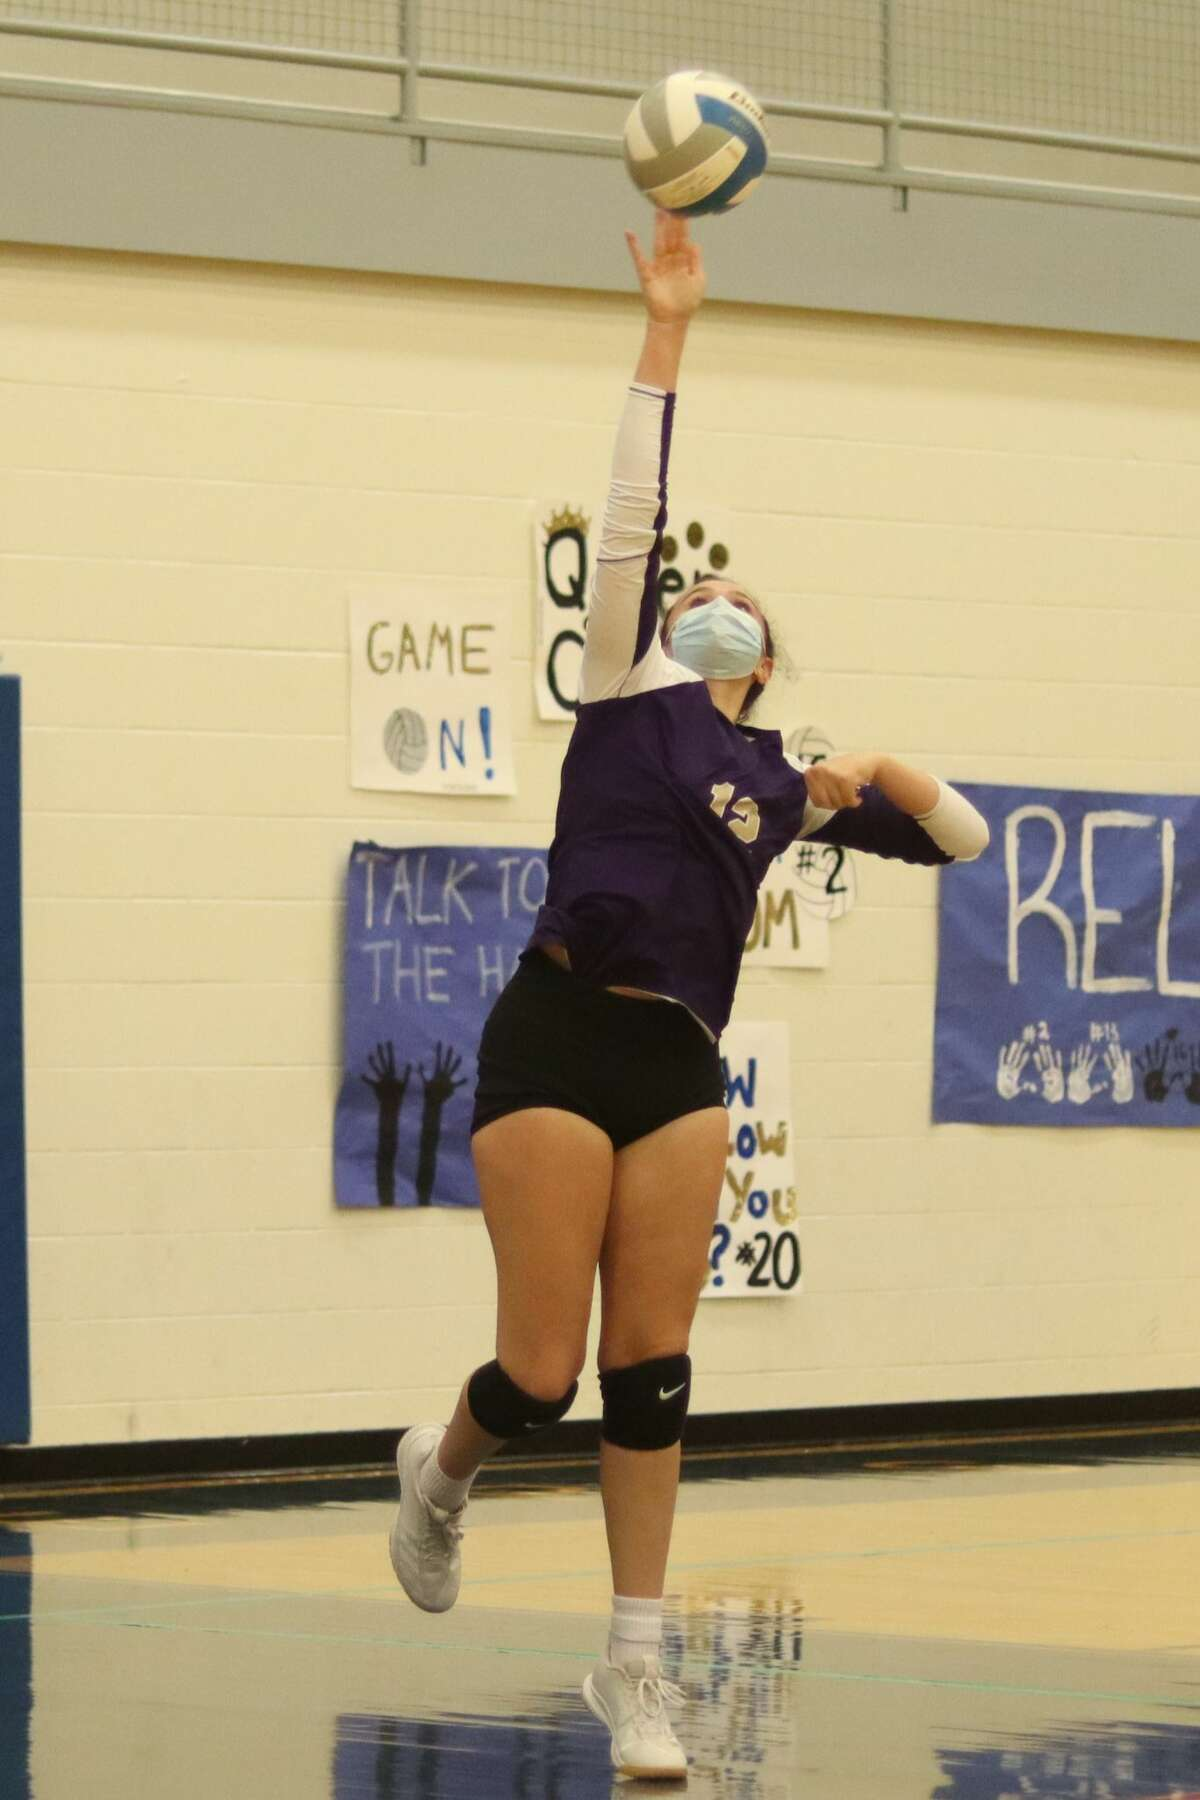 Mariah Manning serves the ball during Frankfort's loss to Onekama on Sept. 28.